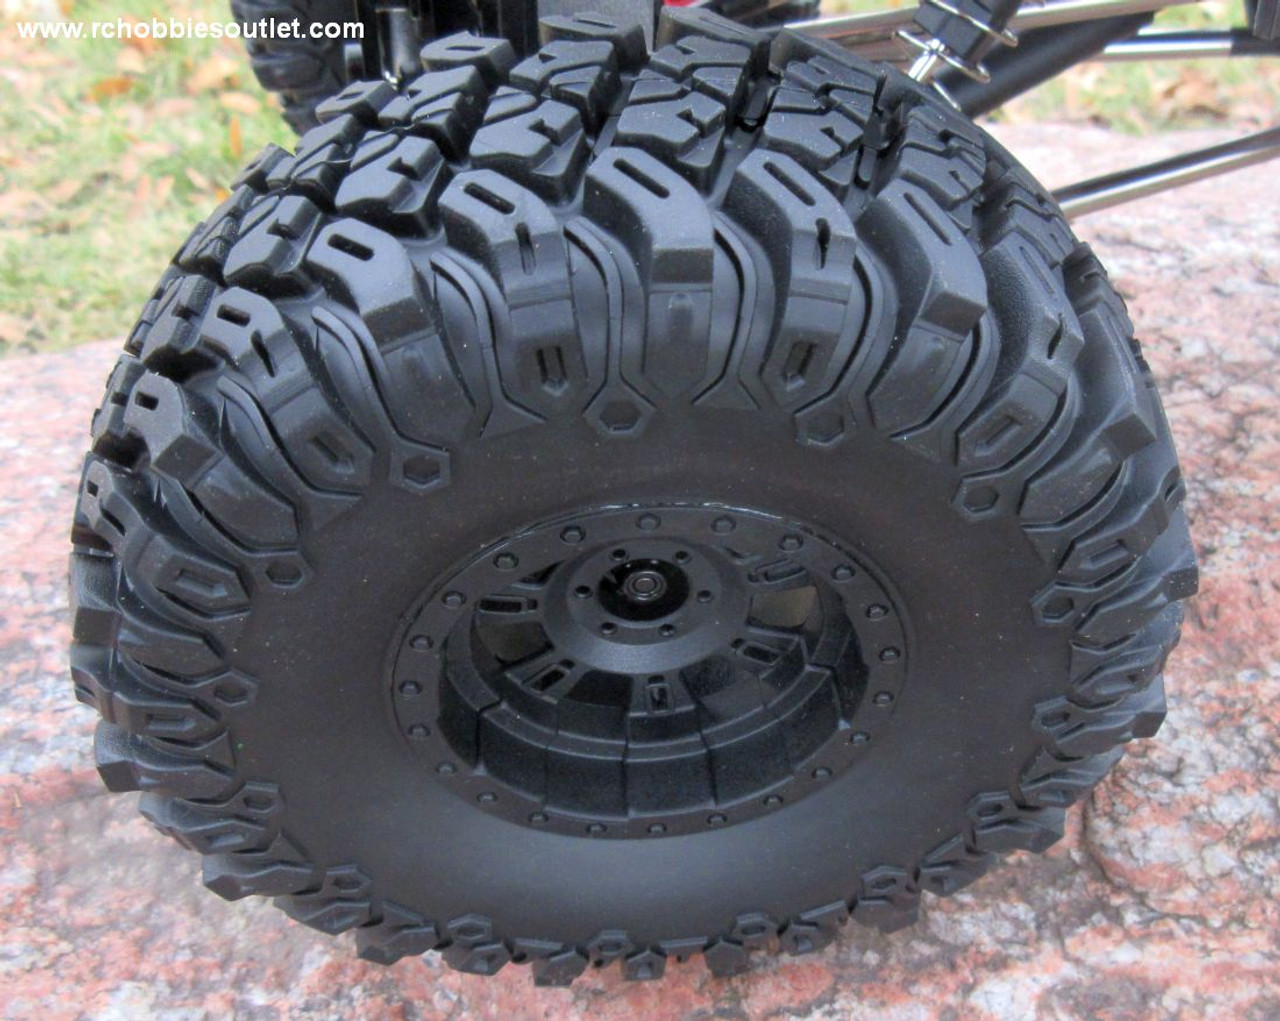 RC Rock Crawler Truck with 4 Wheel Steering 1/10 Scale 2.4G  4WD  88027